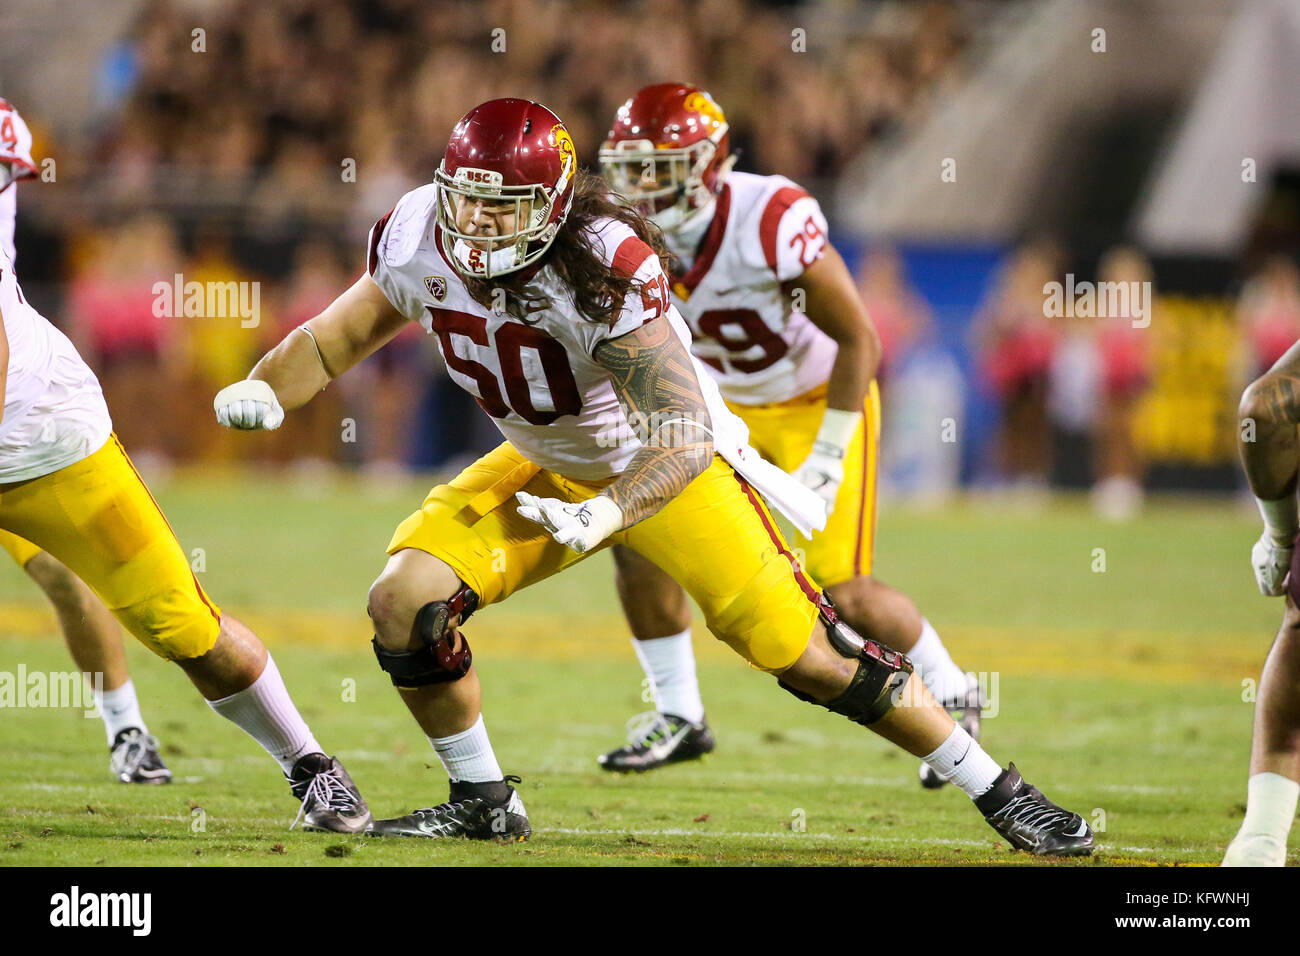 TEMPE, AZ - OCTOBER 28: Toa Lobendahn (50) of the USC Trojans during a college football game between the USC Trojans - Stock Image